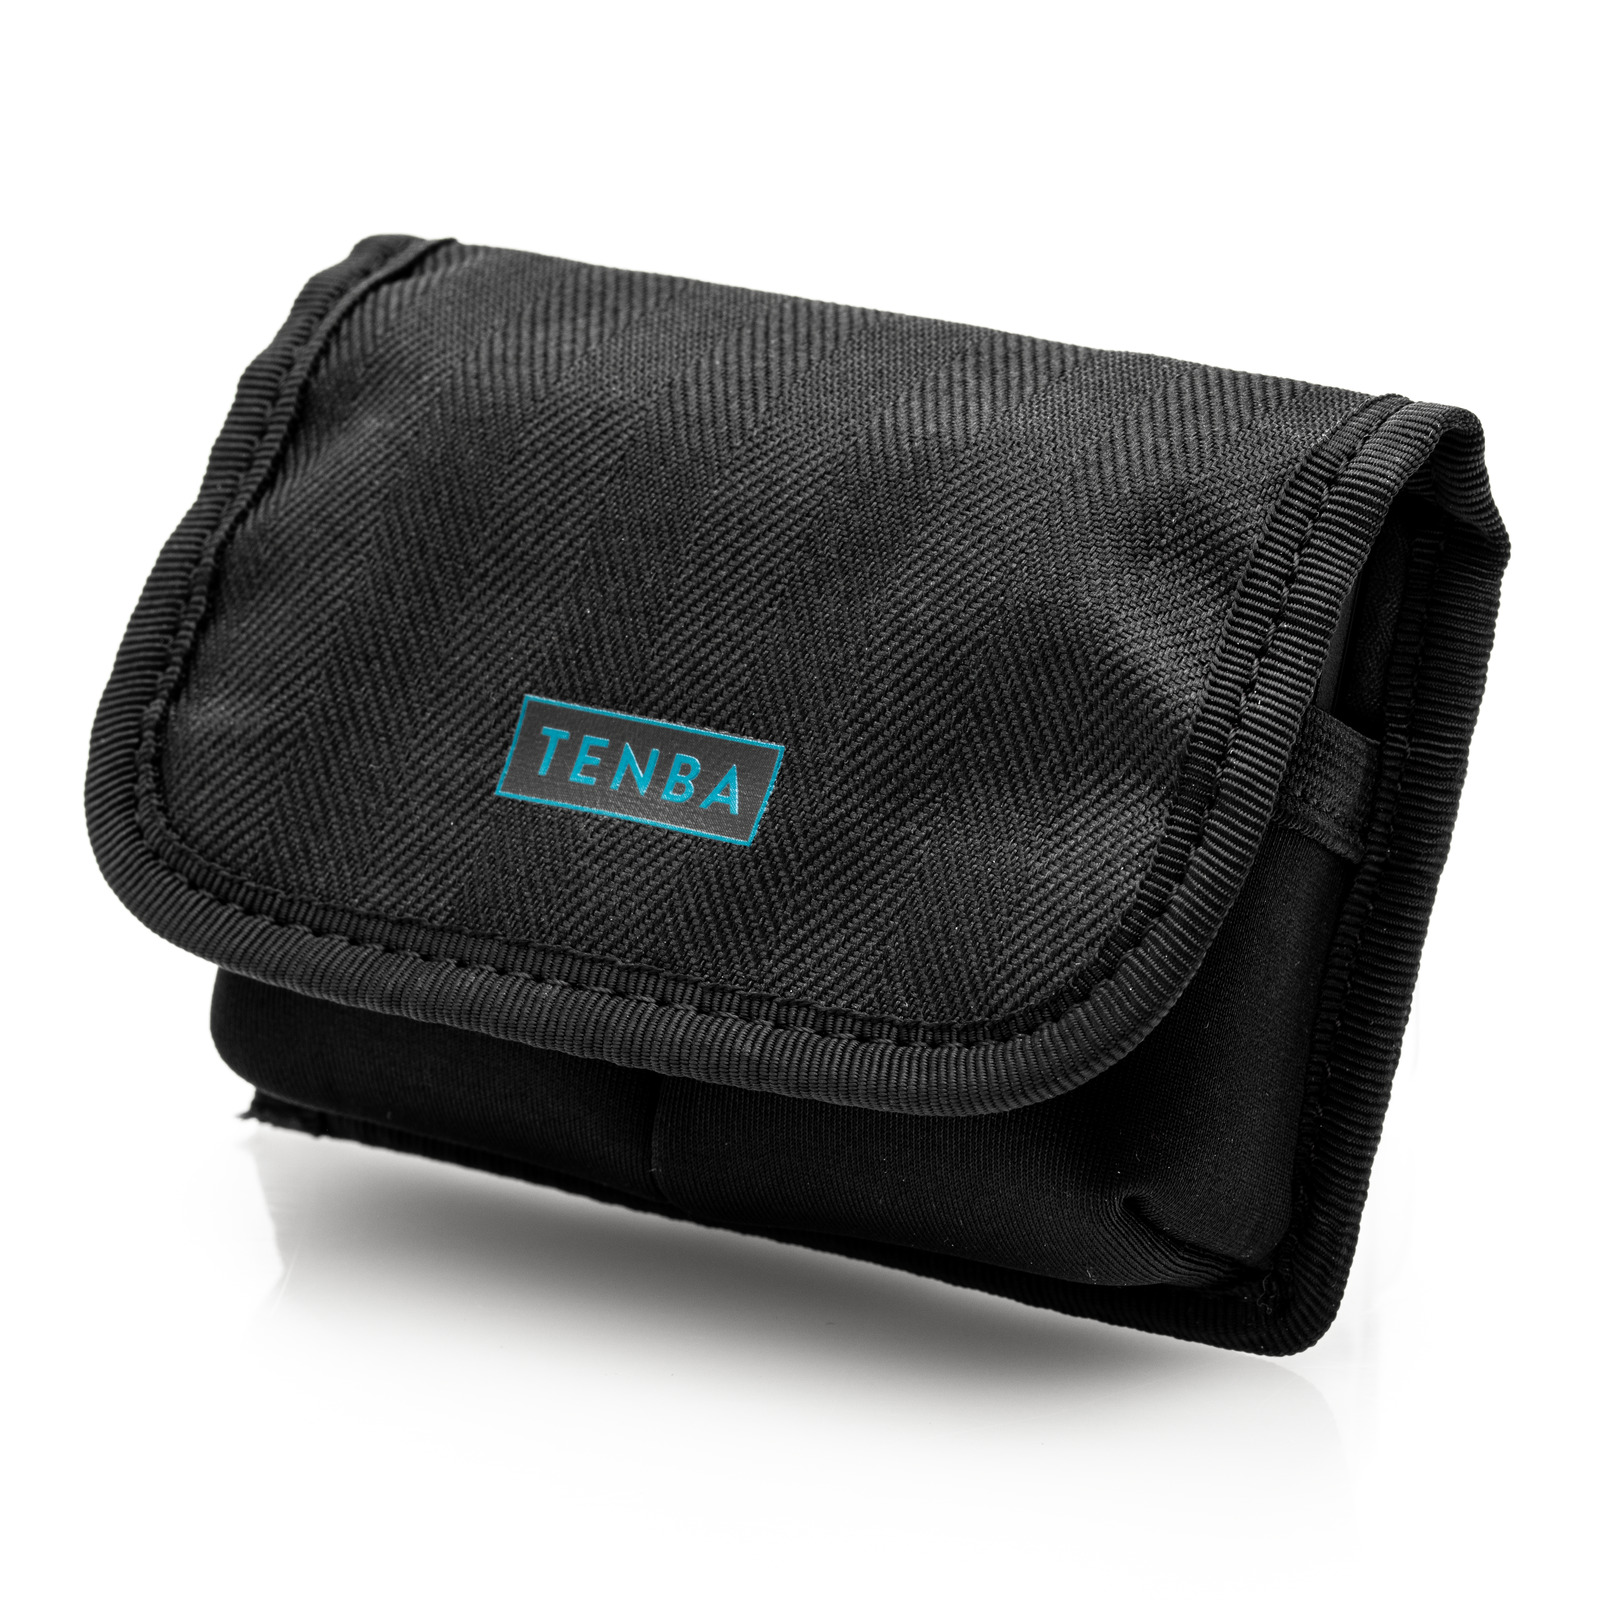 Tenba Tools Reload Battery 2 - Battery Pouch main image